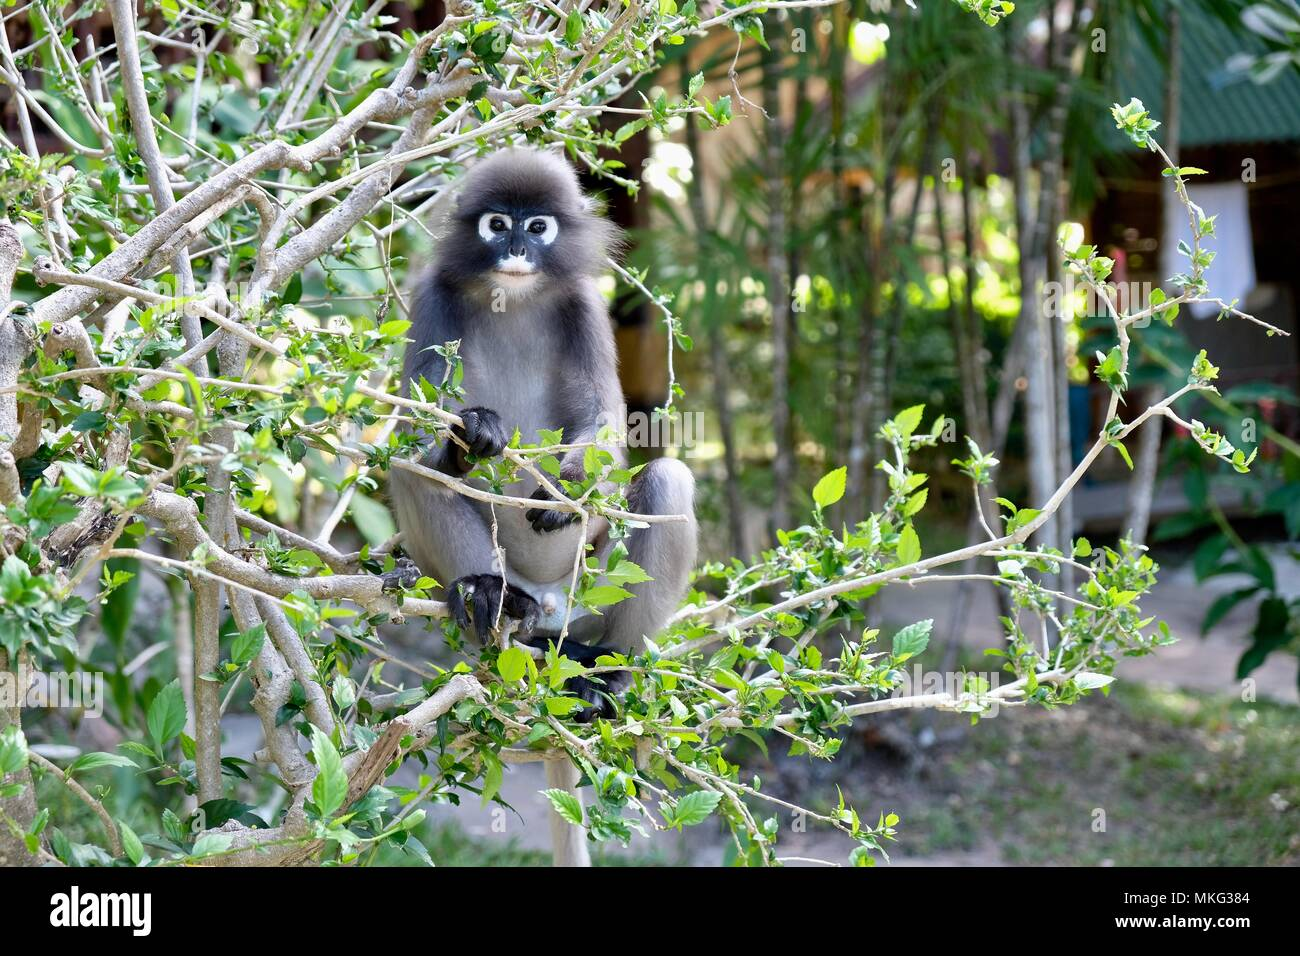 Monkey Railay Krabi Thailand Stock Photos Monkey Railay